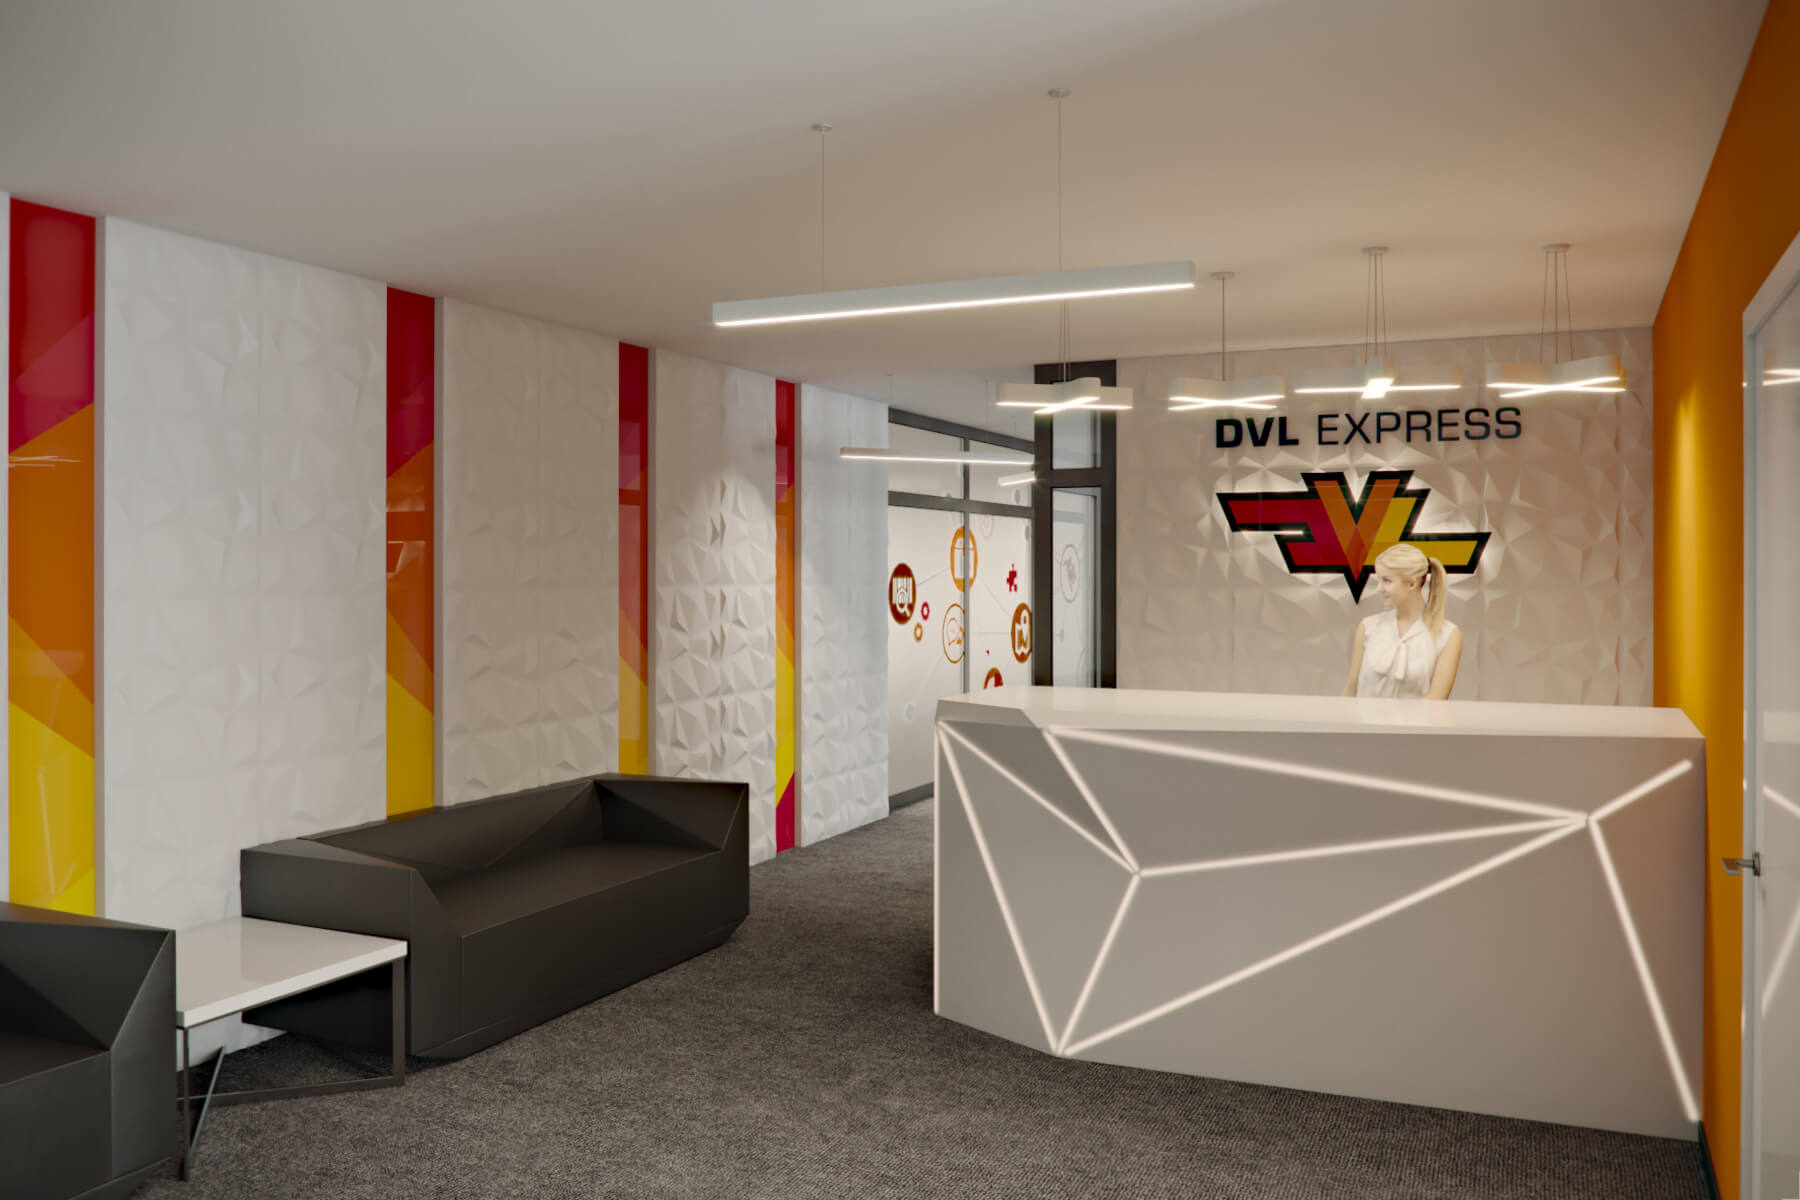 Офис DVL Express, Chicago, USA